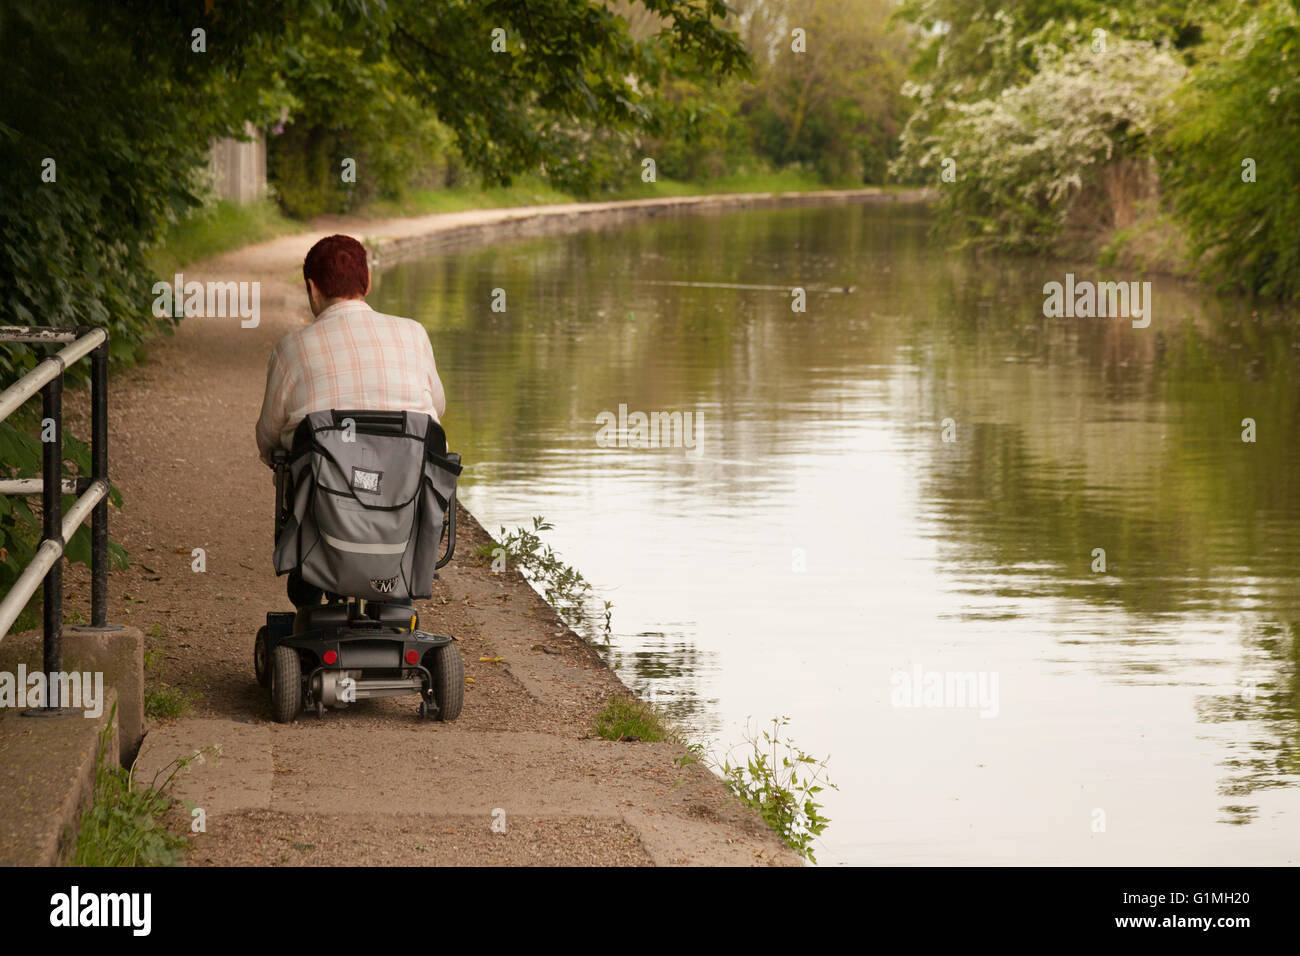 A disabled man using a disability scooter on the towpath, the Grand union Canal at Warwick, Warwickshire, UK - Stock Image